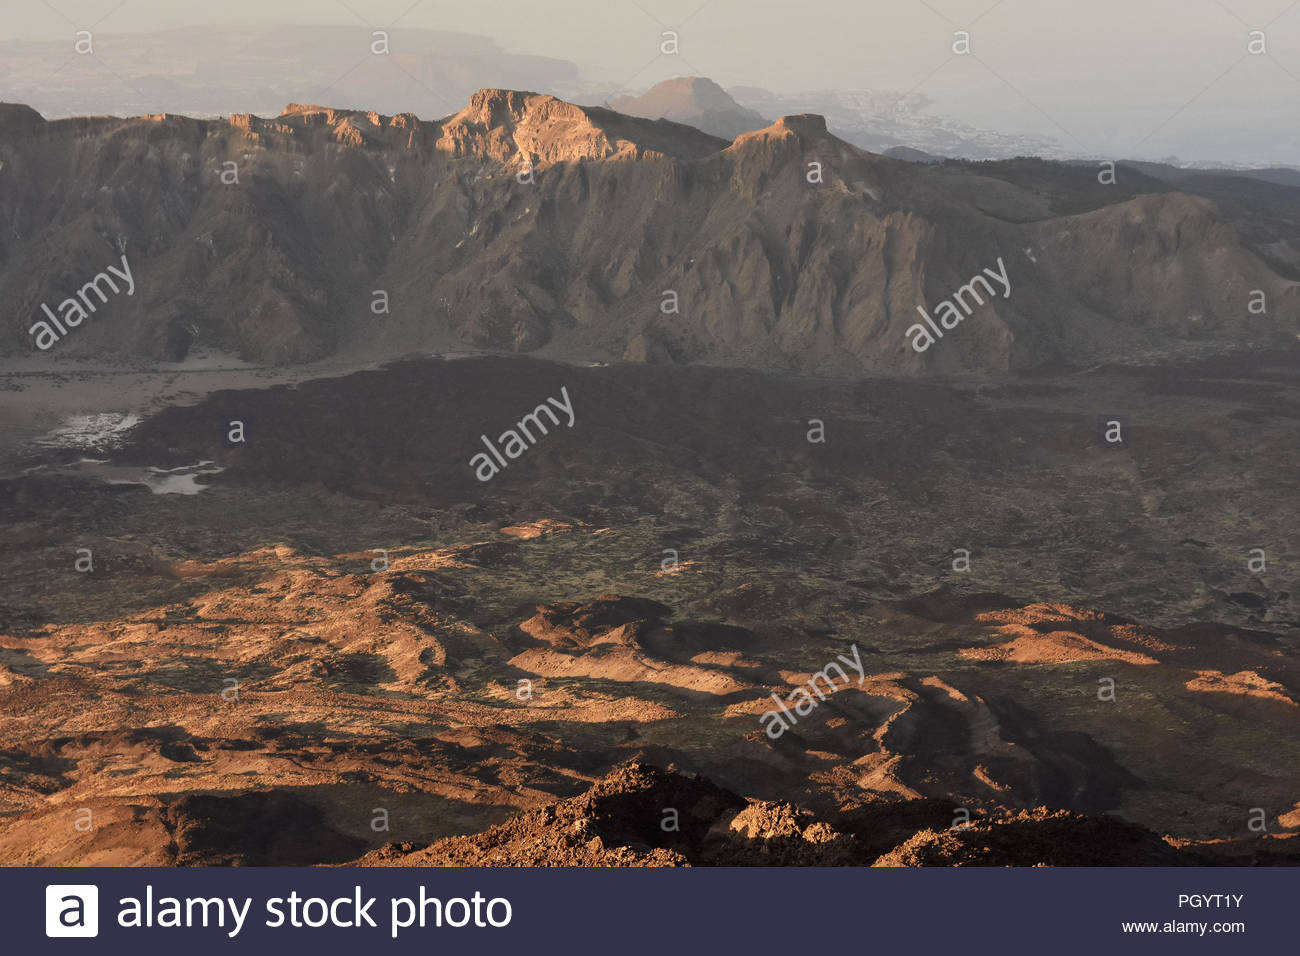 Llano de Ucanca - valley with lava fields and volcanic mountains of Teide National Park Tenerife Canary Islands Spain. Elevated view from Mount Teide. - Stock Image